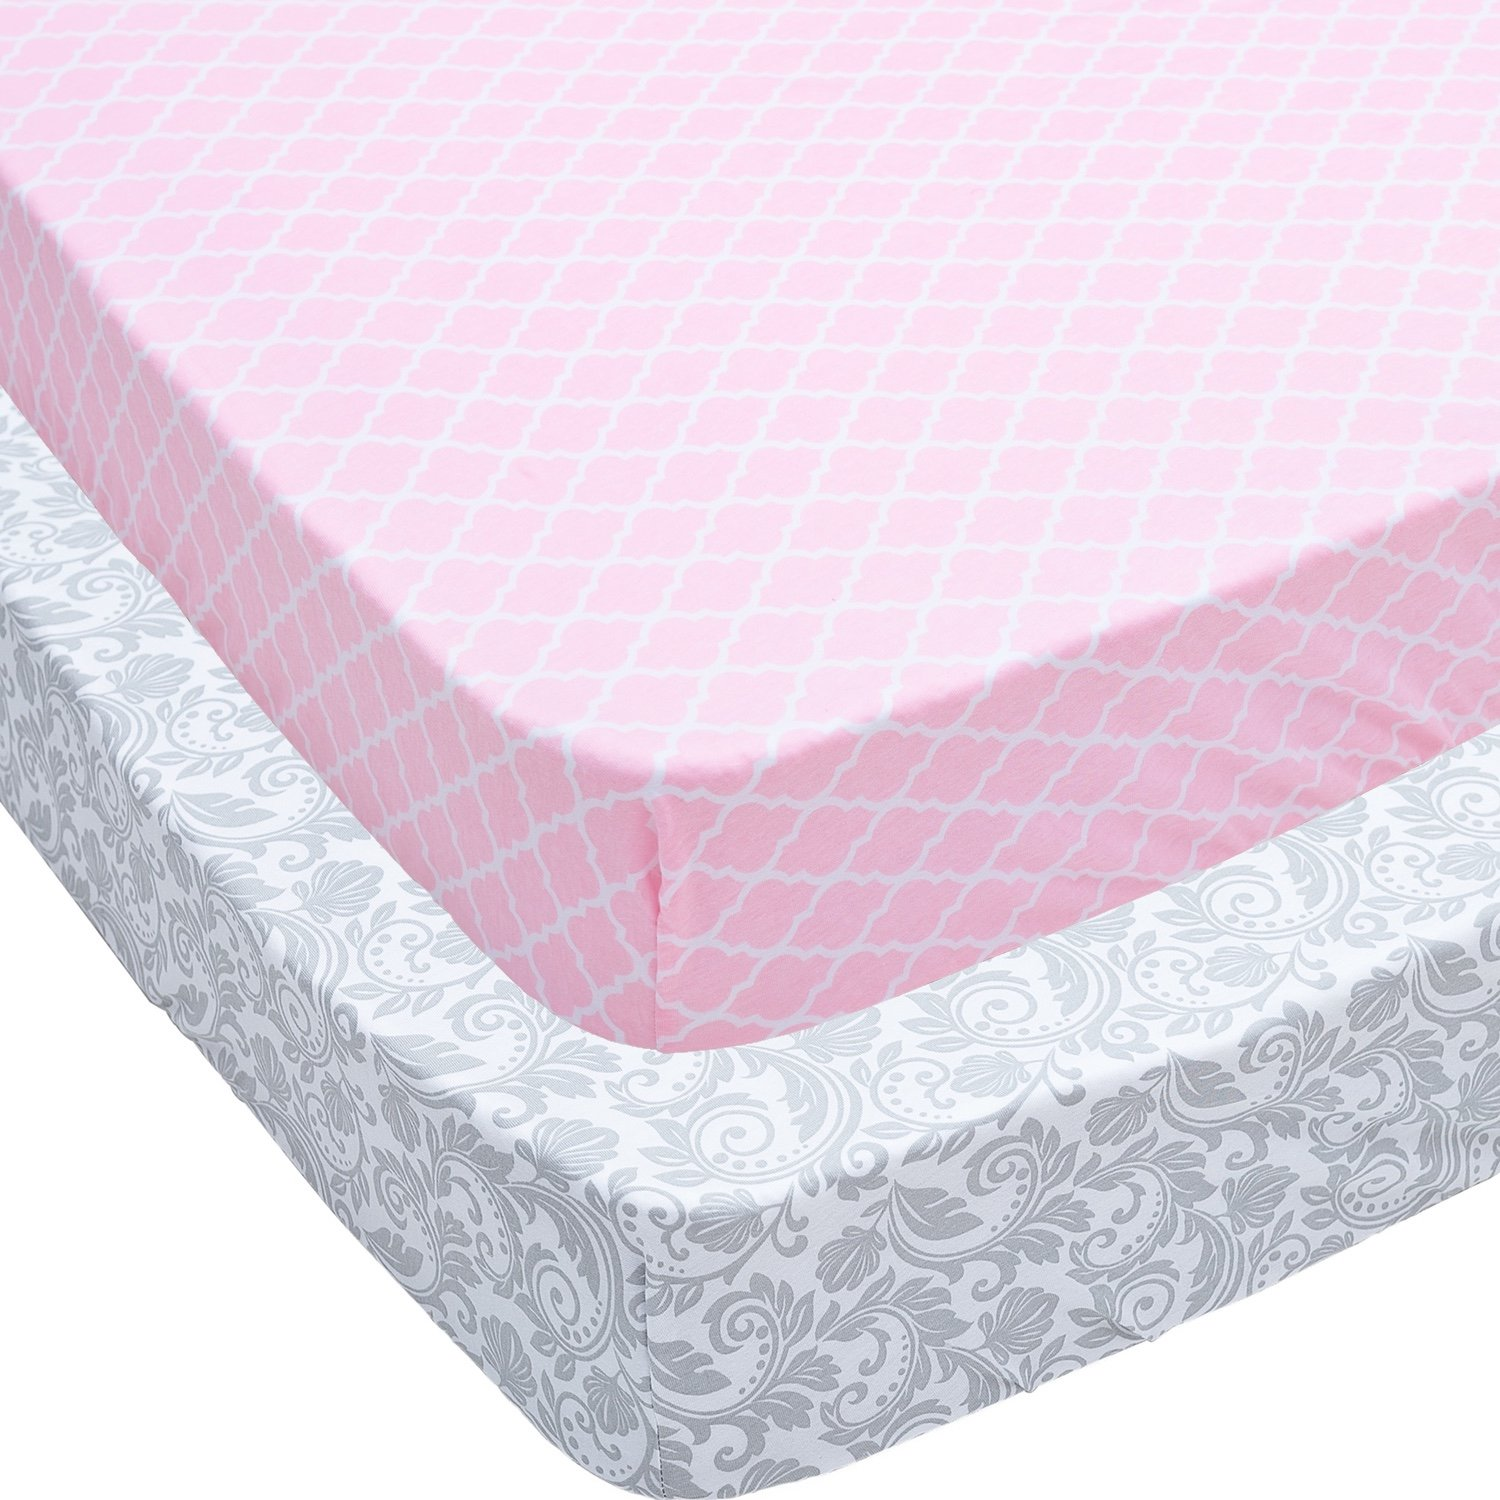 Crib Sheets, 2 Pack Pink Quatrefoil & Floral Fitted Soft Jersey Cotton Cover